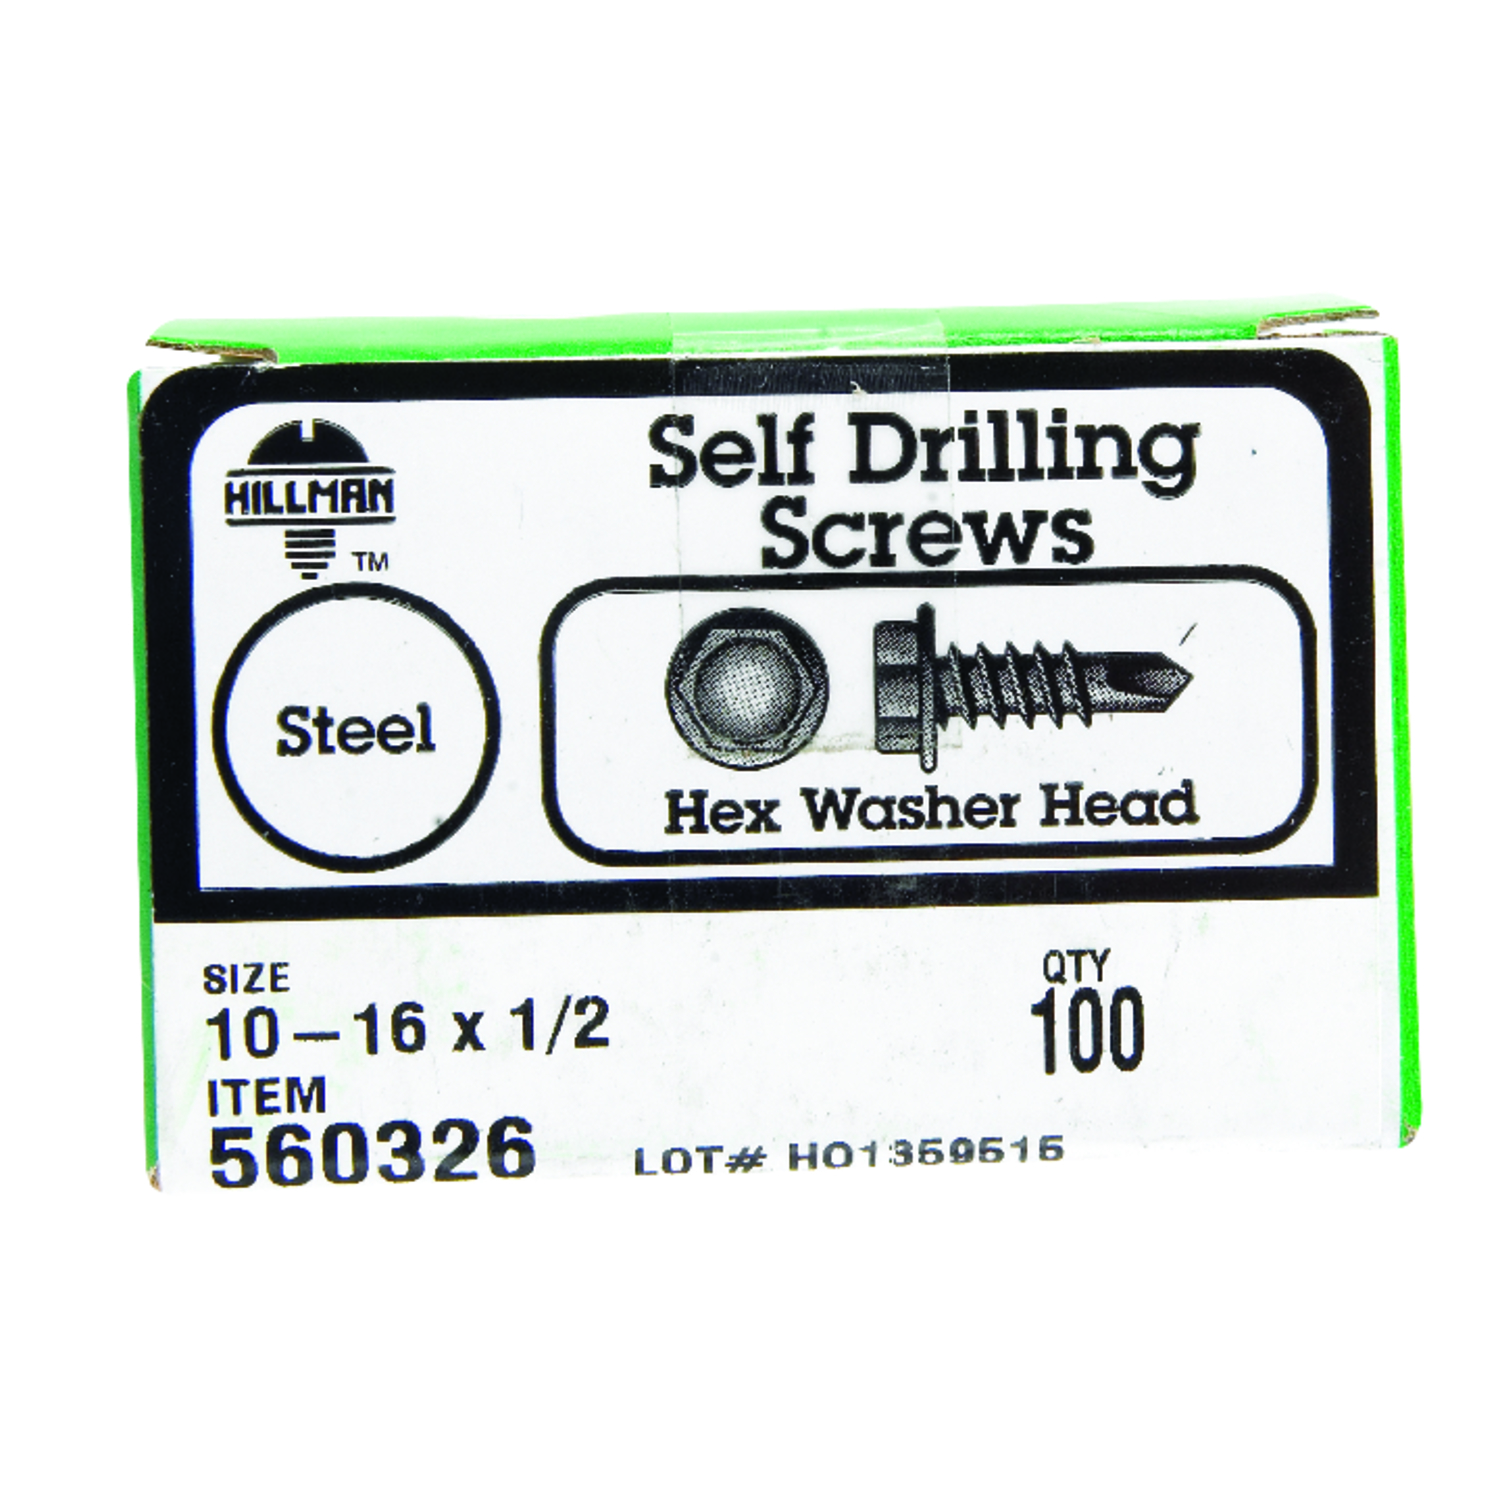 HILLMAN  10-16   x 1/2 in. L Hex  Zinc-Plated  Hex Washer  Self- Drilling Screws  Steel  100 per box